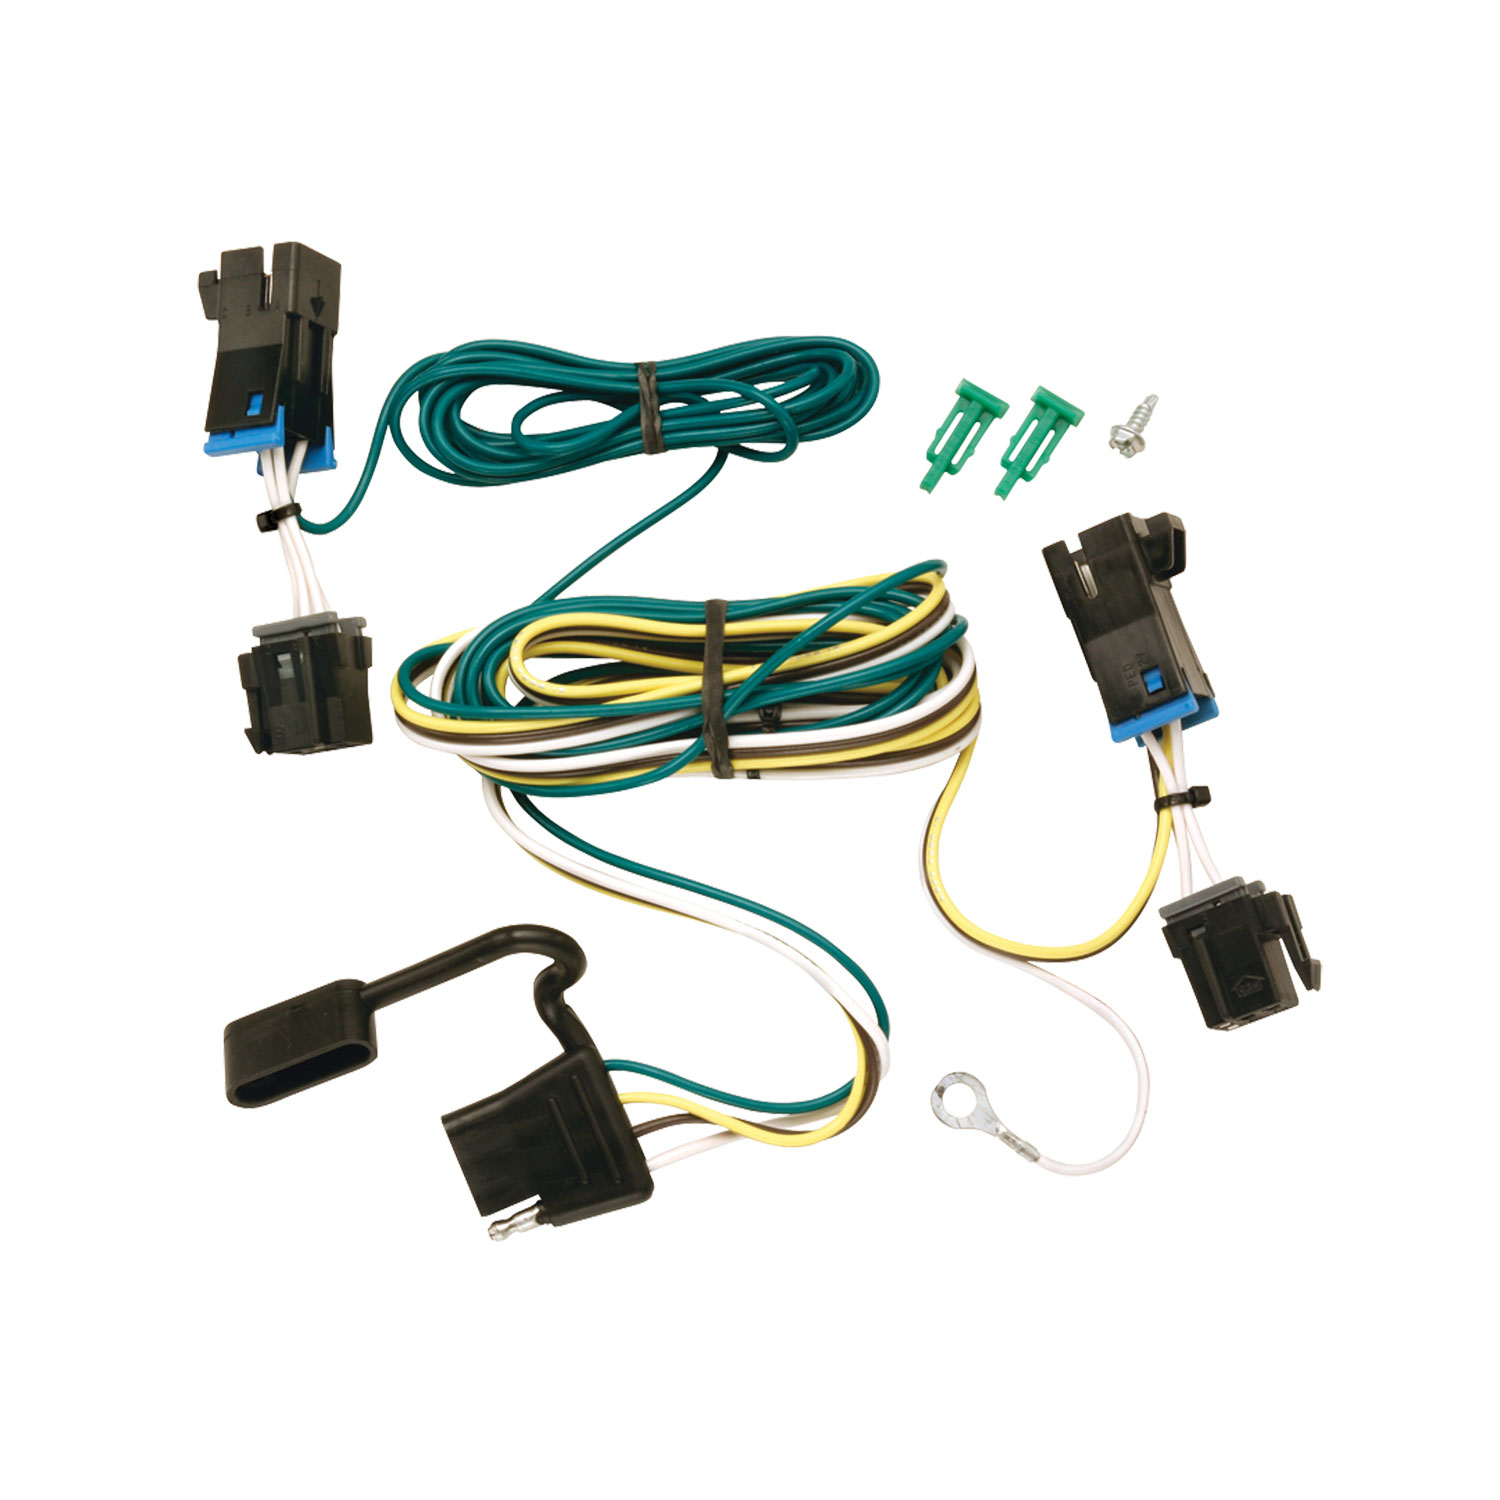 Tow Ready 118460 T-One Connector Assembly